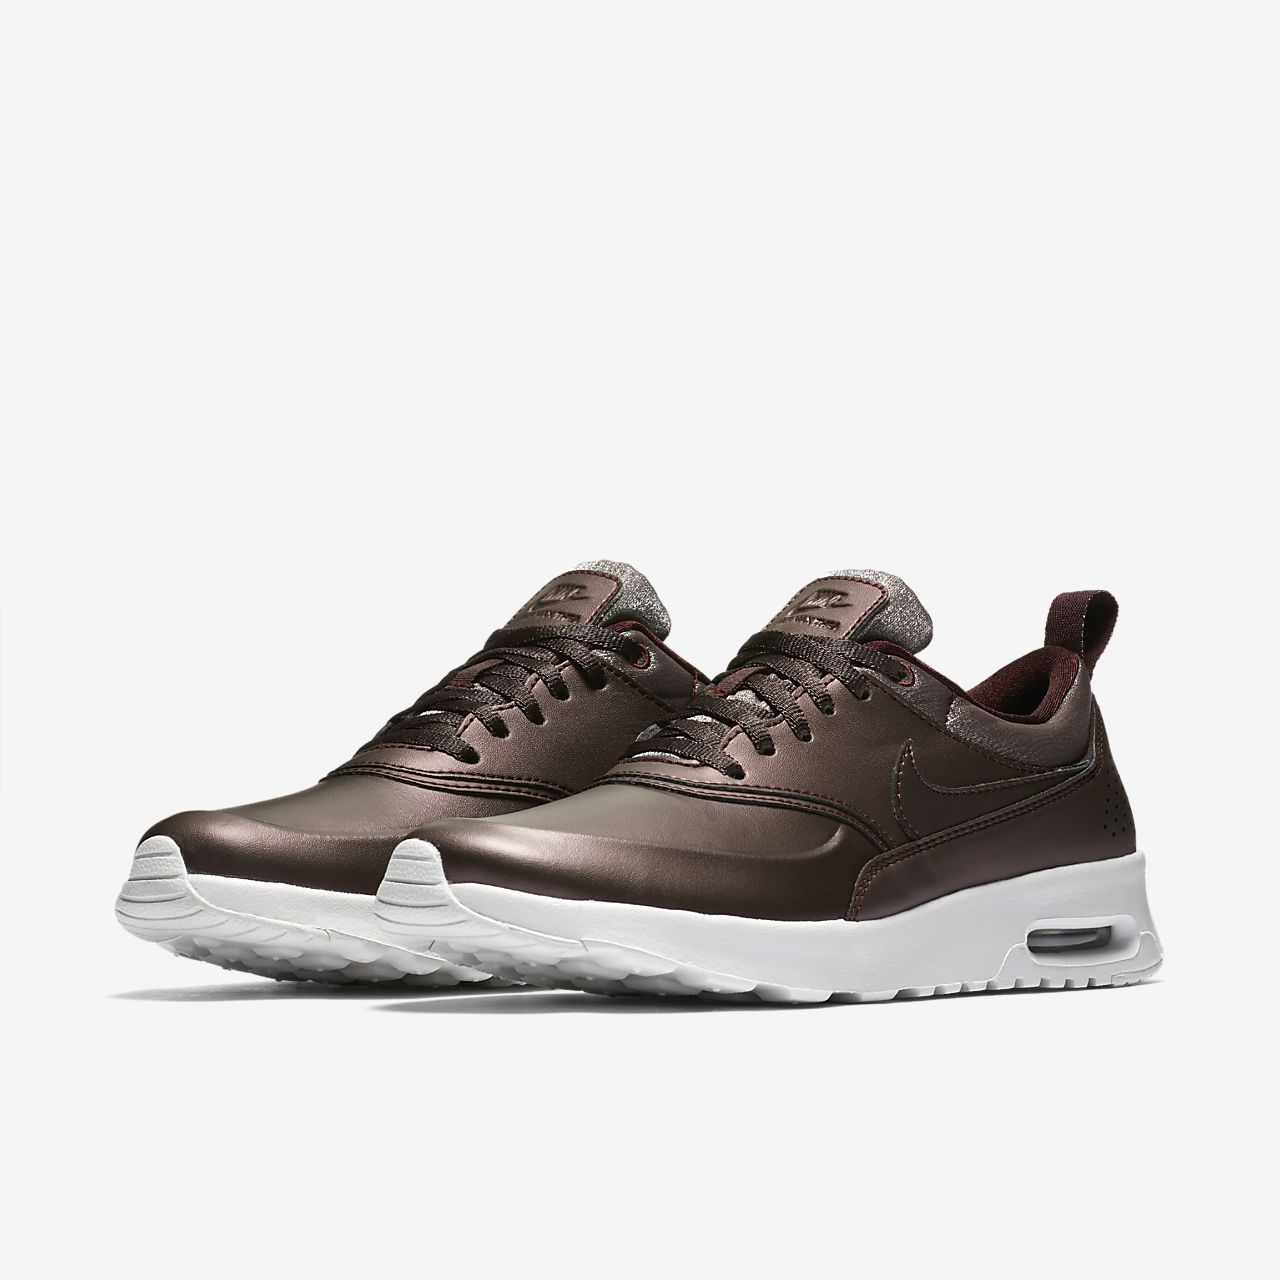 nike air max thea premium women 39 s shoe gb. Black Bedroom Furniture Sets. Home Design Ideas